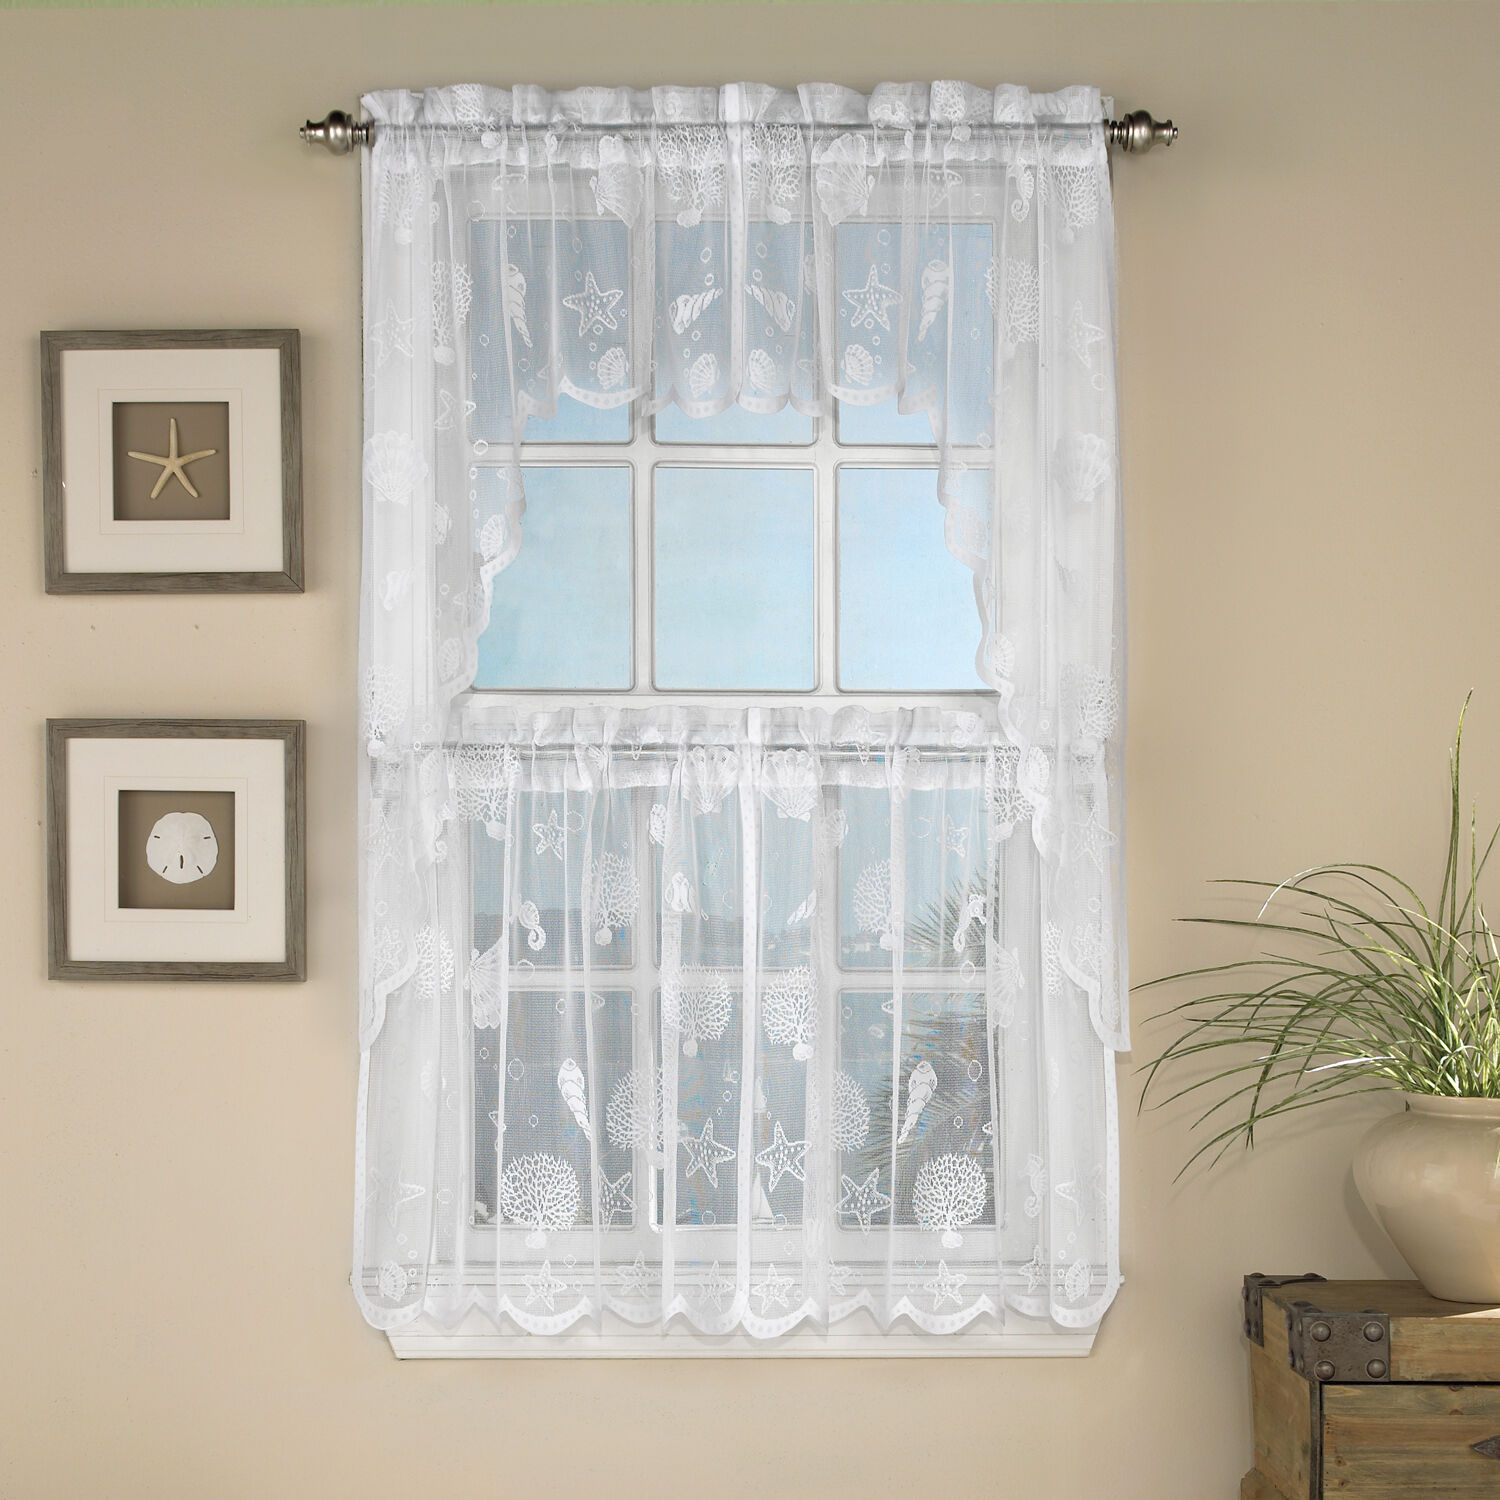 Primary image for Reef Marine White Knit Lace Kitchen Curtains Choice of Tier, Valance or Swag